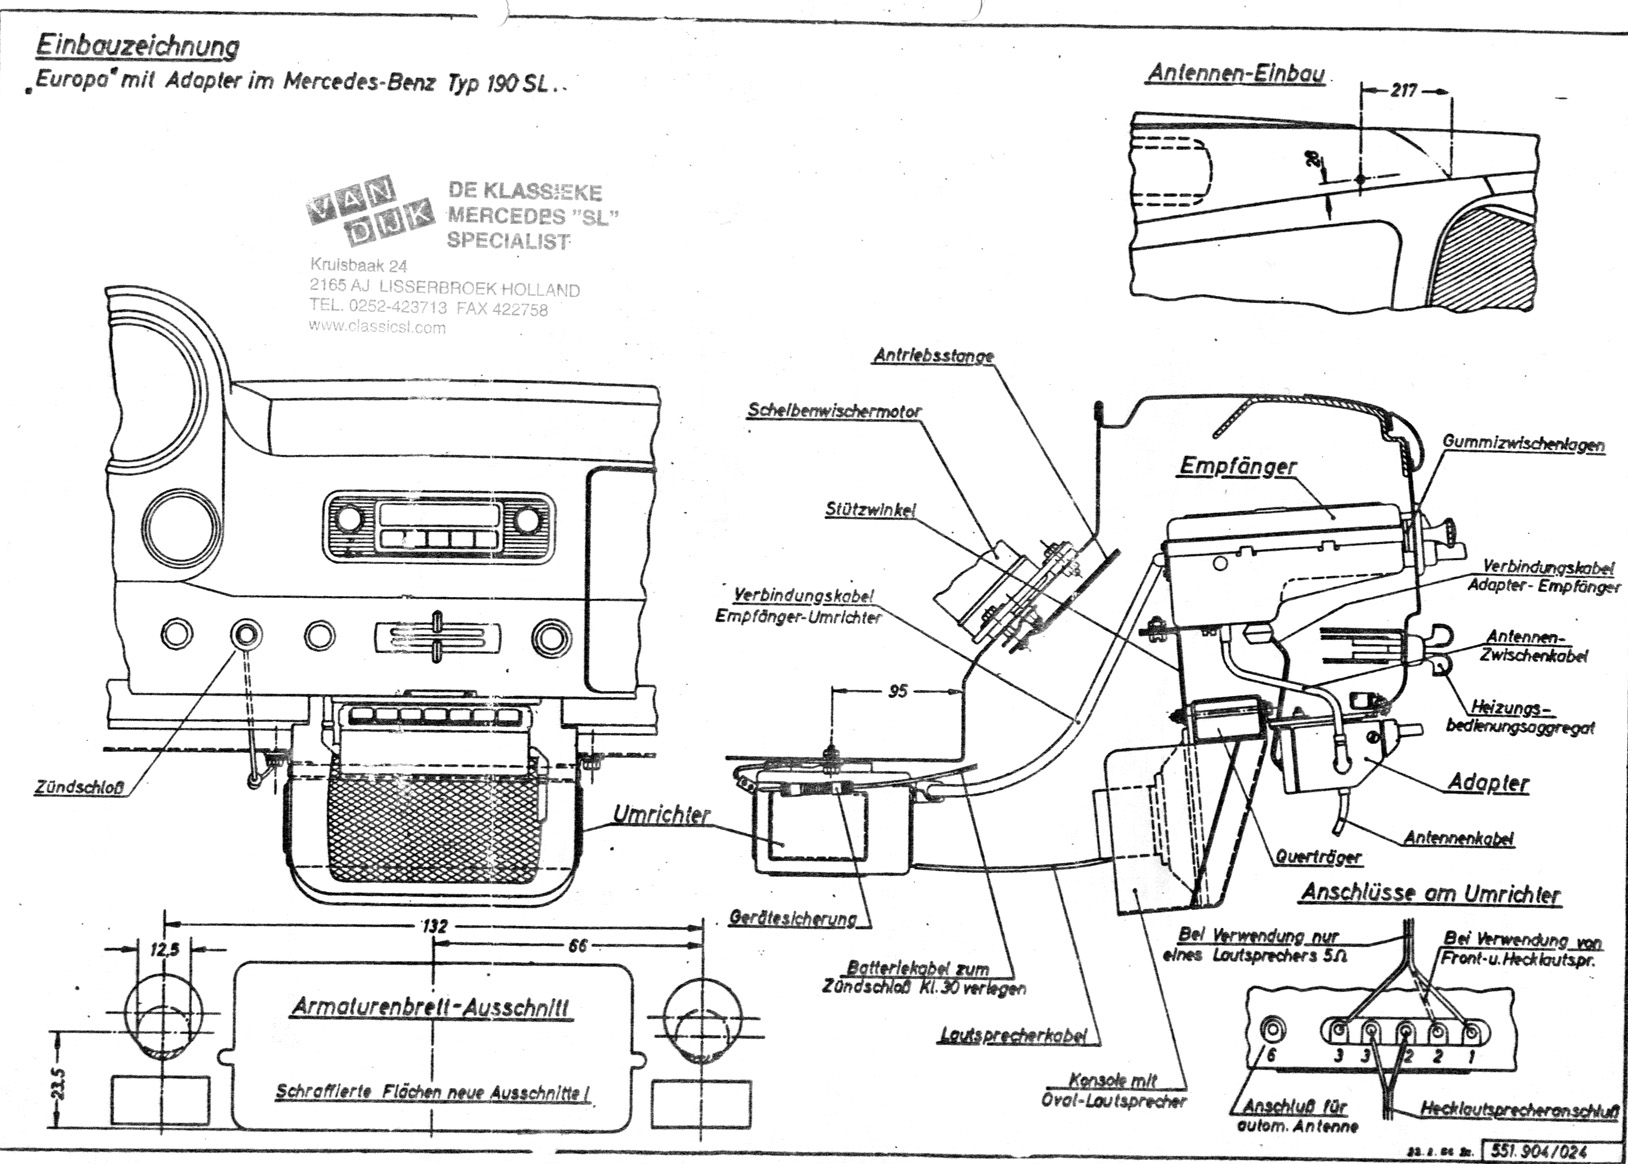 Mercedes 190d Fuse Box Wiring Library Vw Radio Adapter Becker Europa Technical Illustration